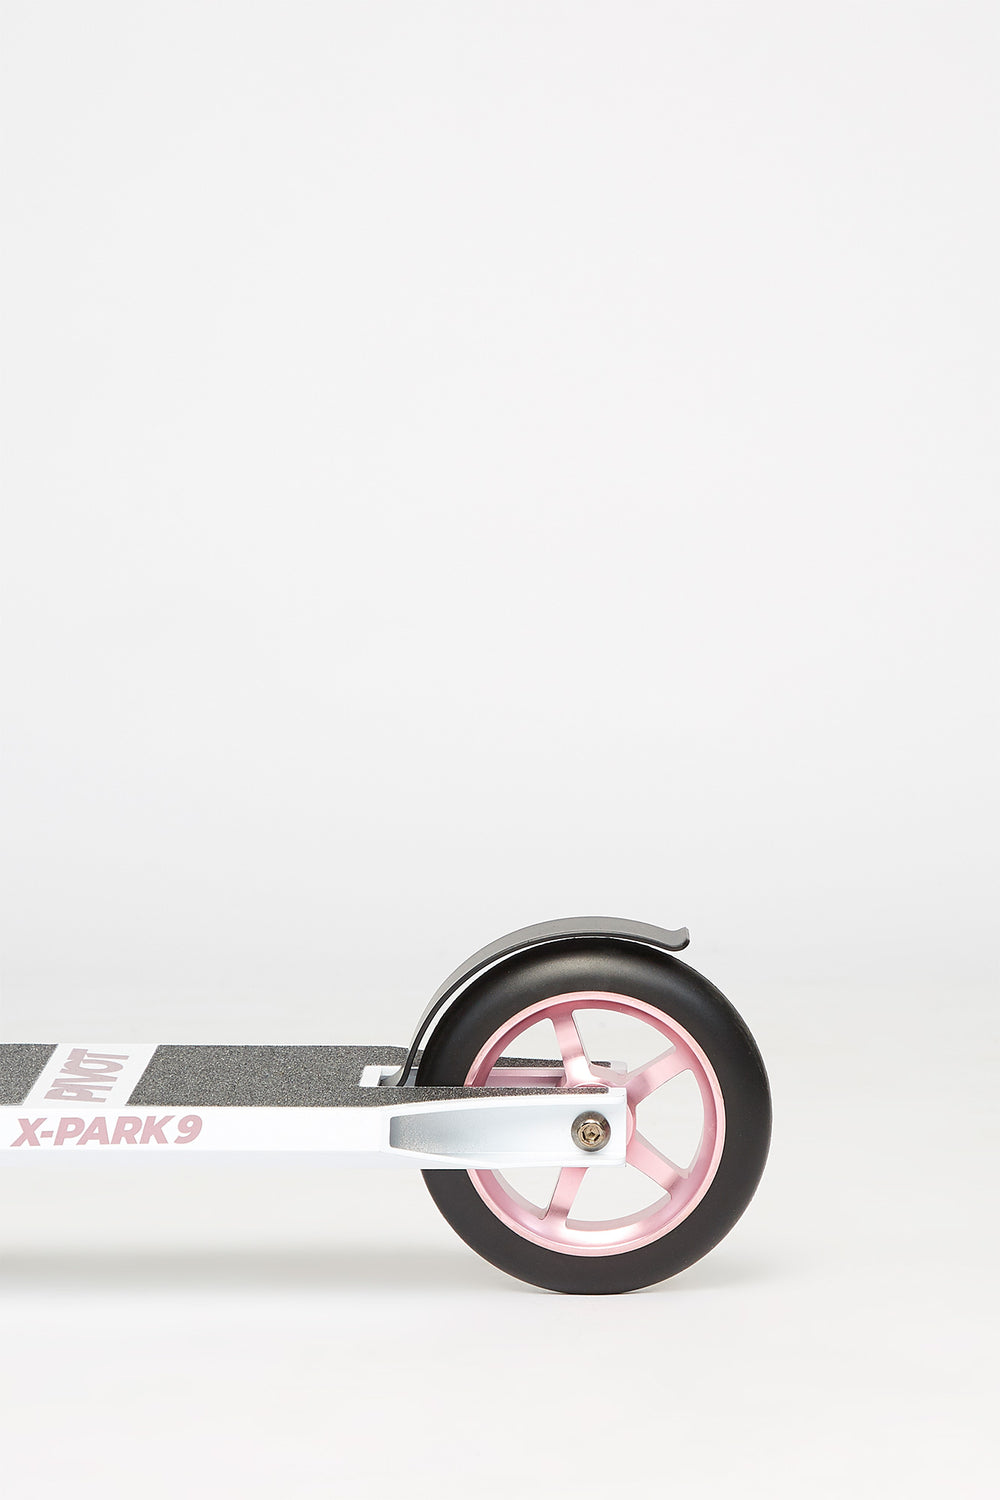 Pivot X-Park 9 White & Rose Gold Scooter Rose